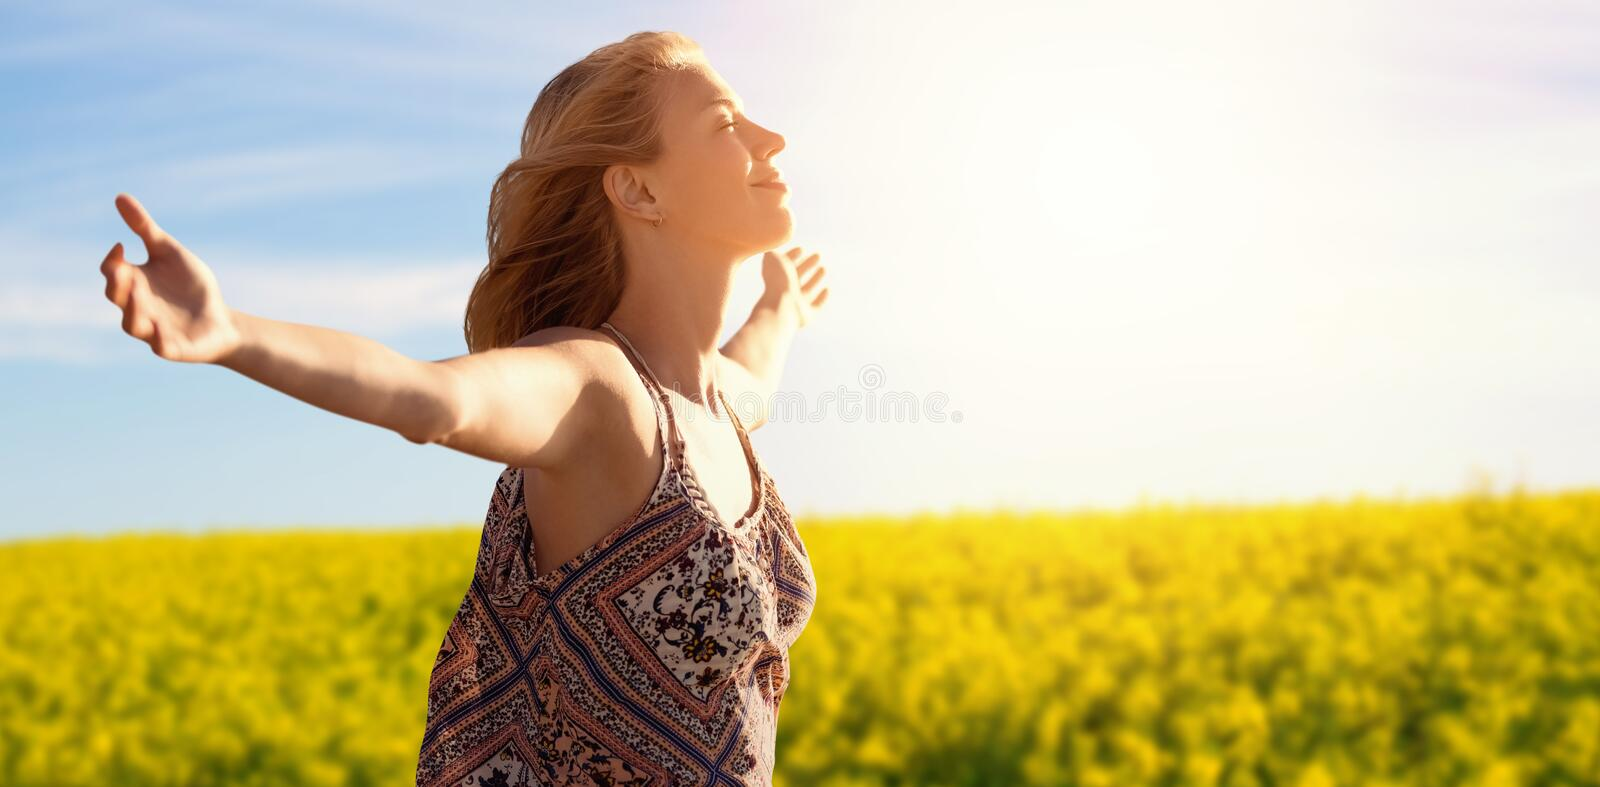 Composite image of side view of a woman raising arms up stock photo